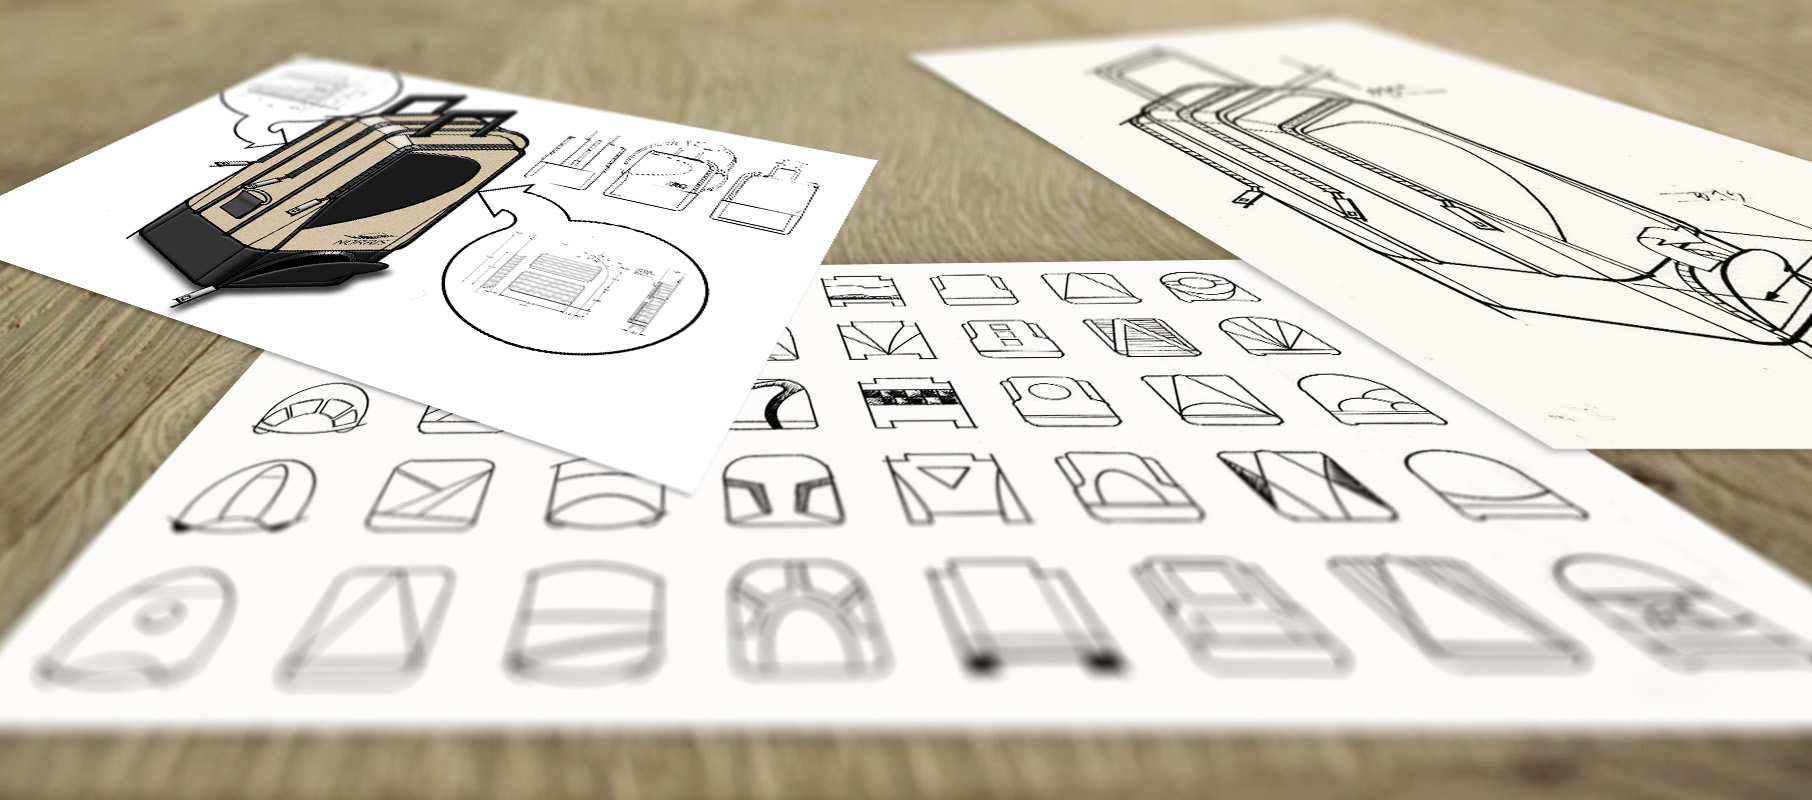 A variety of concept sketches for a civil aviation pilot bag.